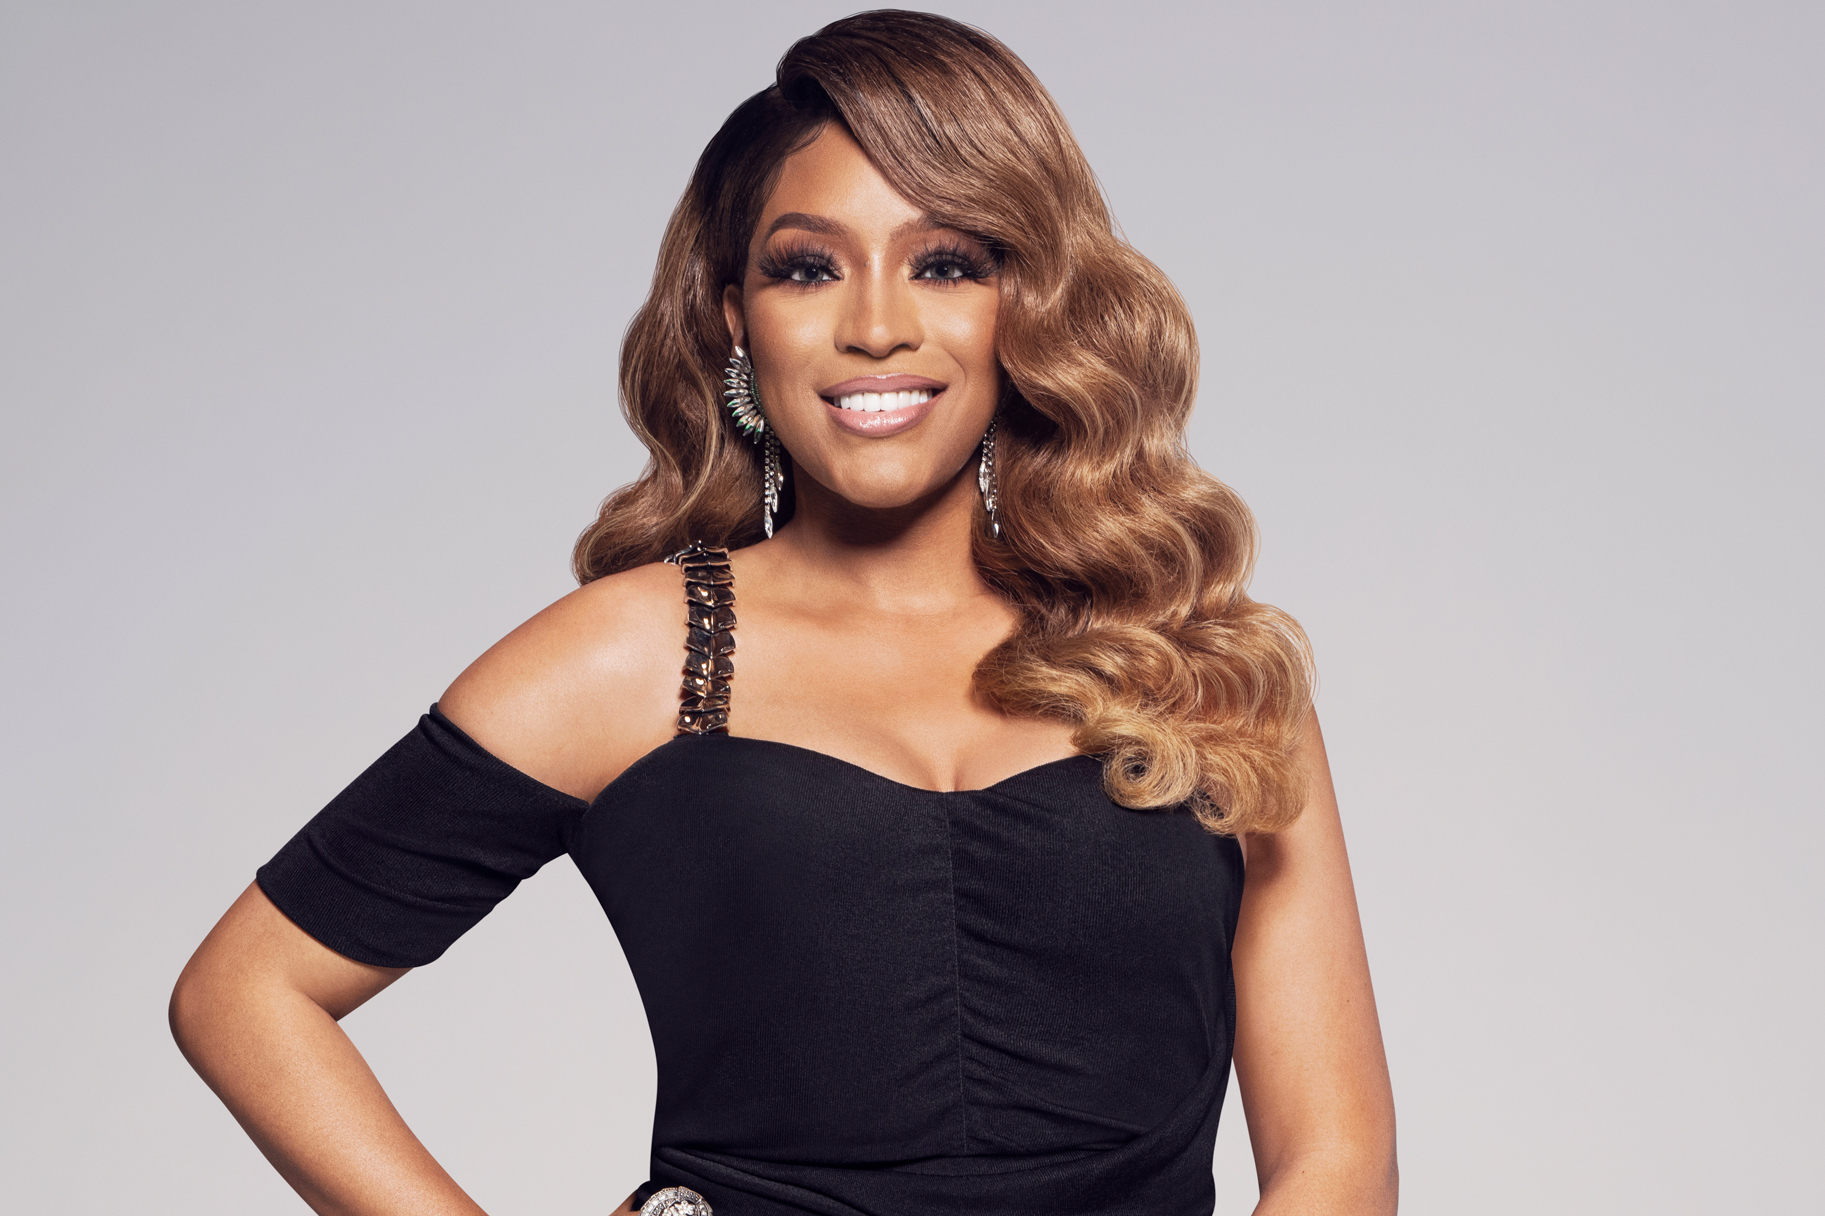 drew-sidora-says-she-is-nervous-to-join-rhoa-after-having-turned-down-the-gig-twice-before-heres-why